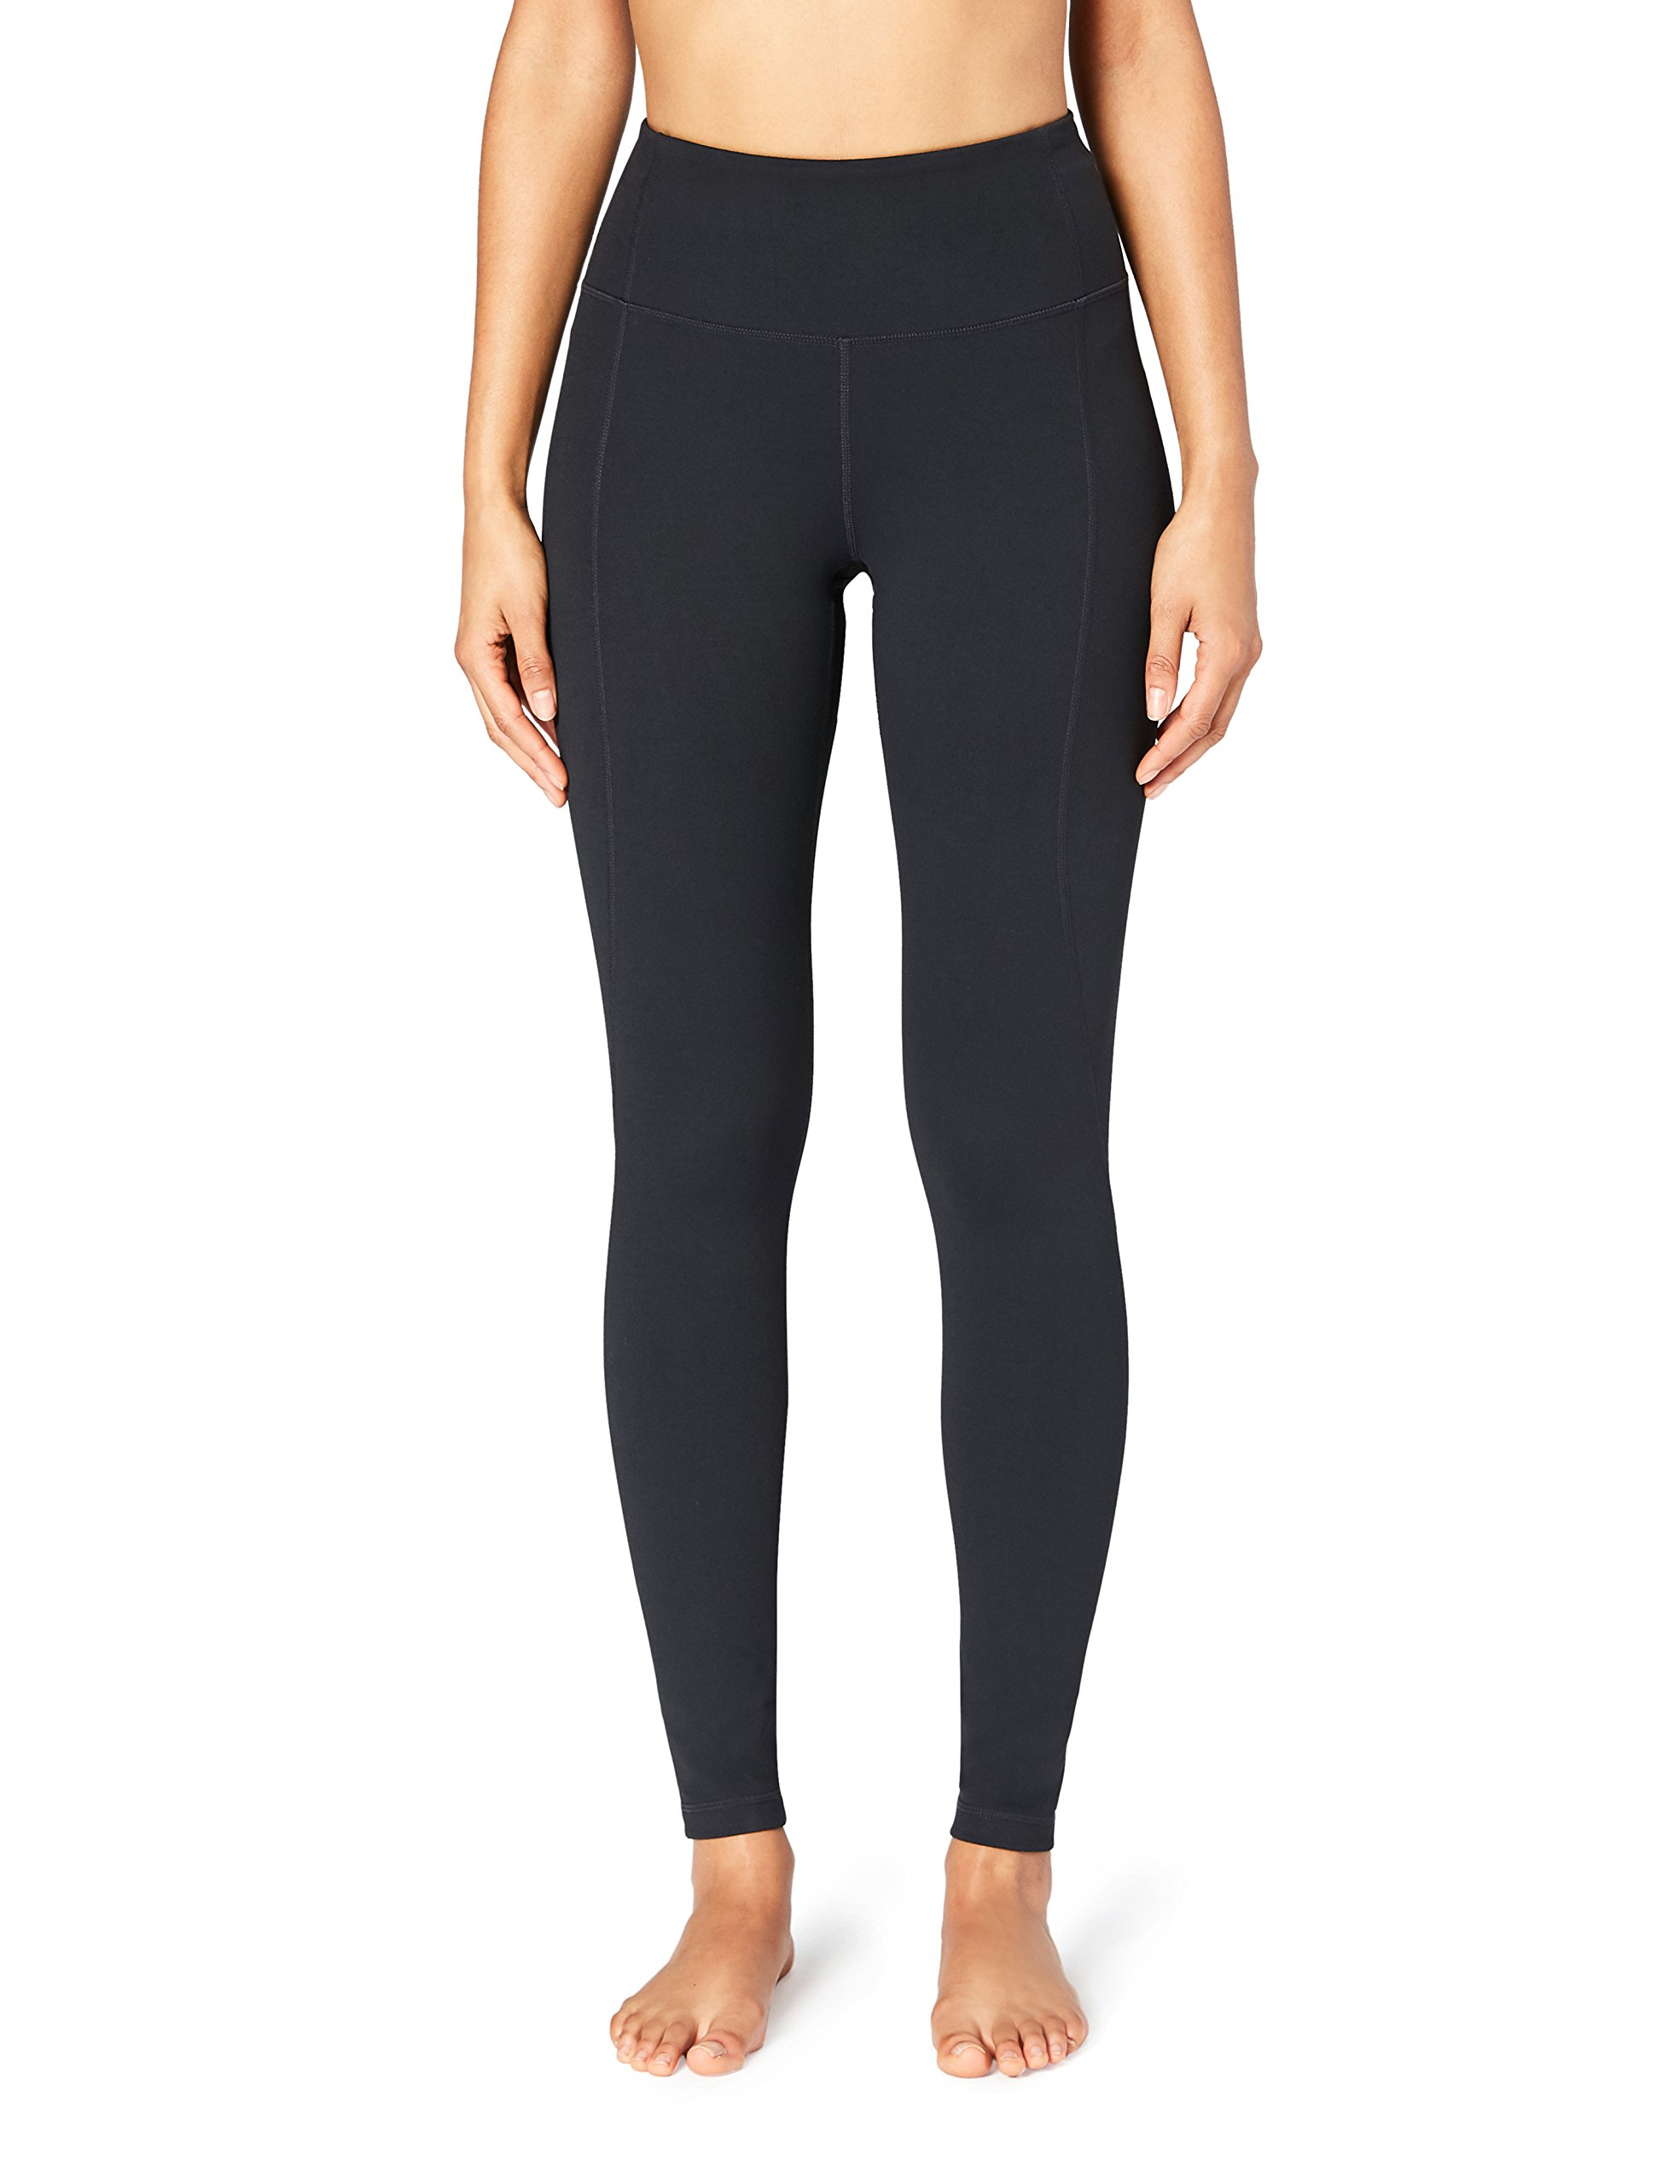 Amazon Brand – Core 10 Women's 'Build Your Own' Yoga Pant Full-Length Legging